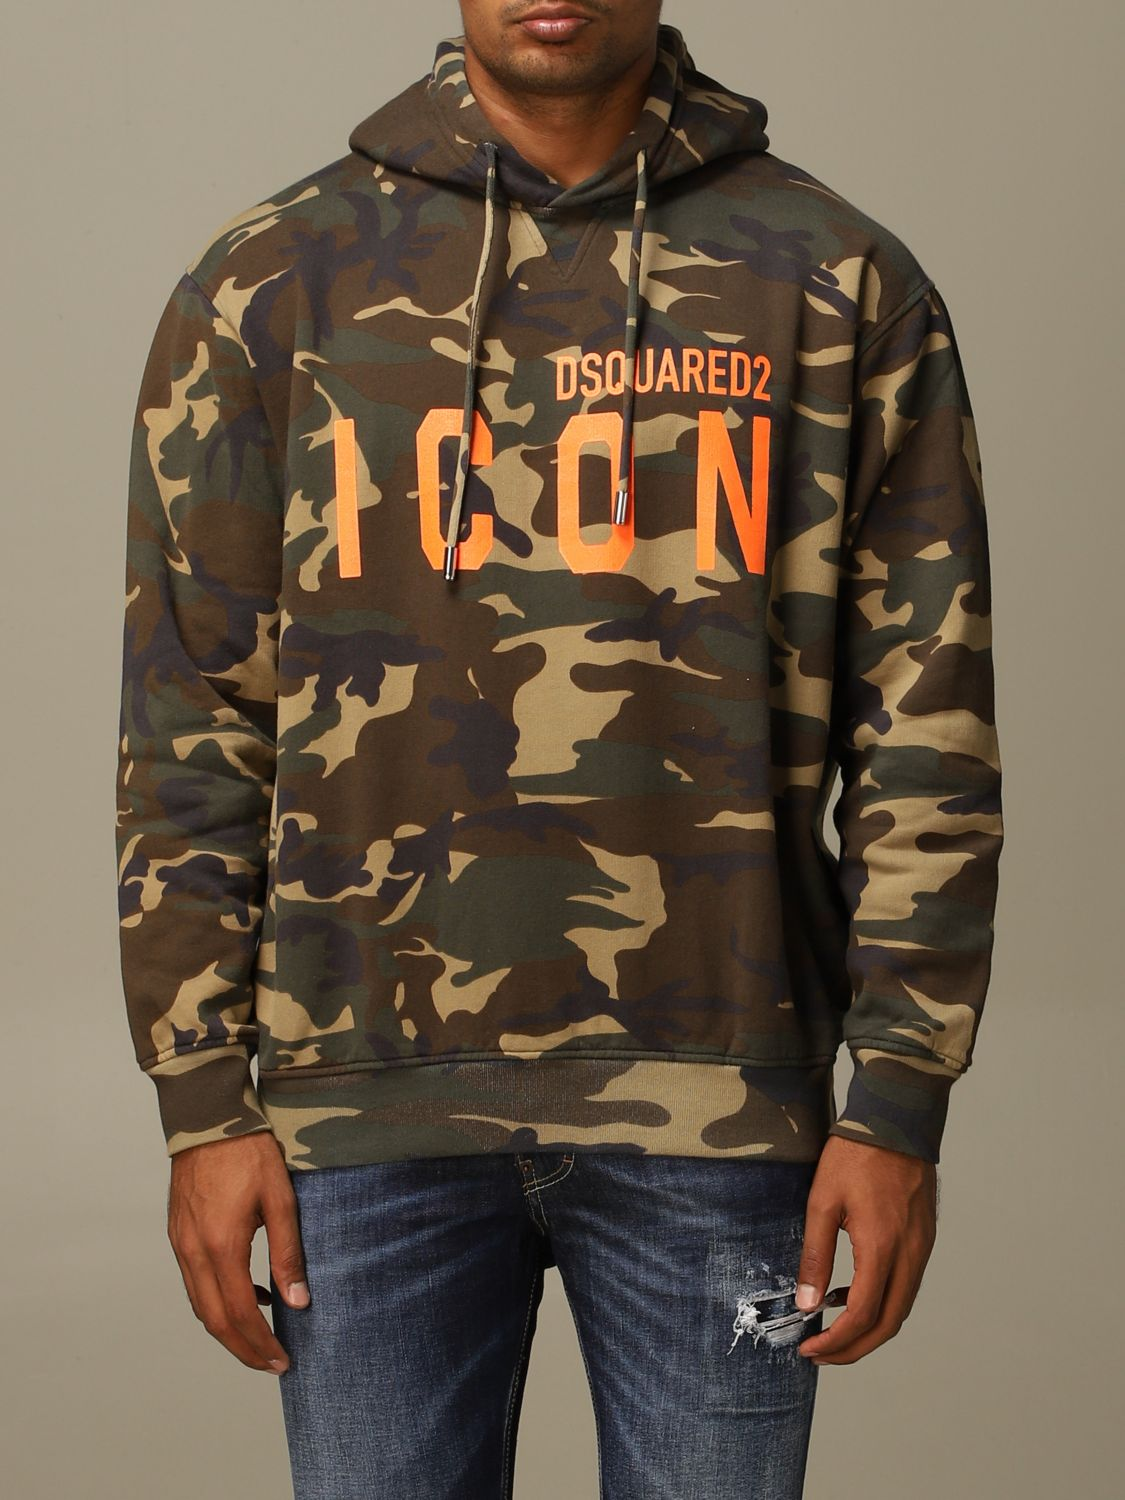 Sweatshirt Dsquared2: Sweatshirt herren Dsquared2 military 1